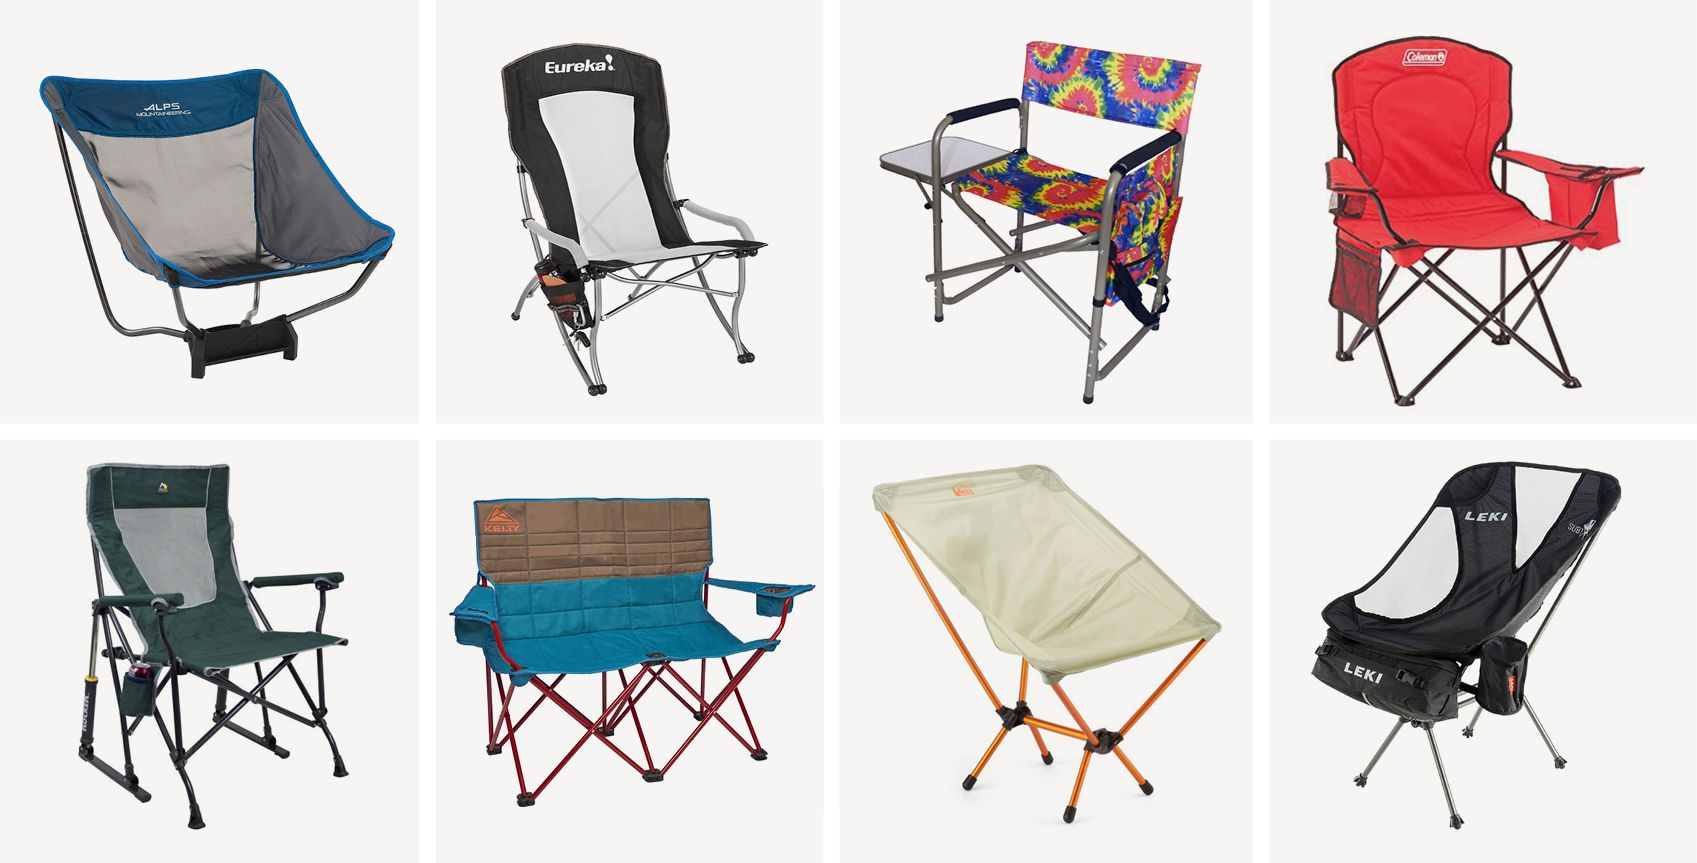 Small Camping Chair Best Camping Chairs 2019 Lightweight And Portable Camping Chair